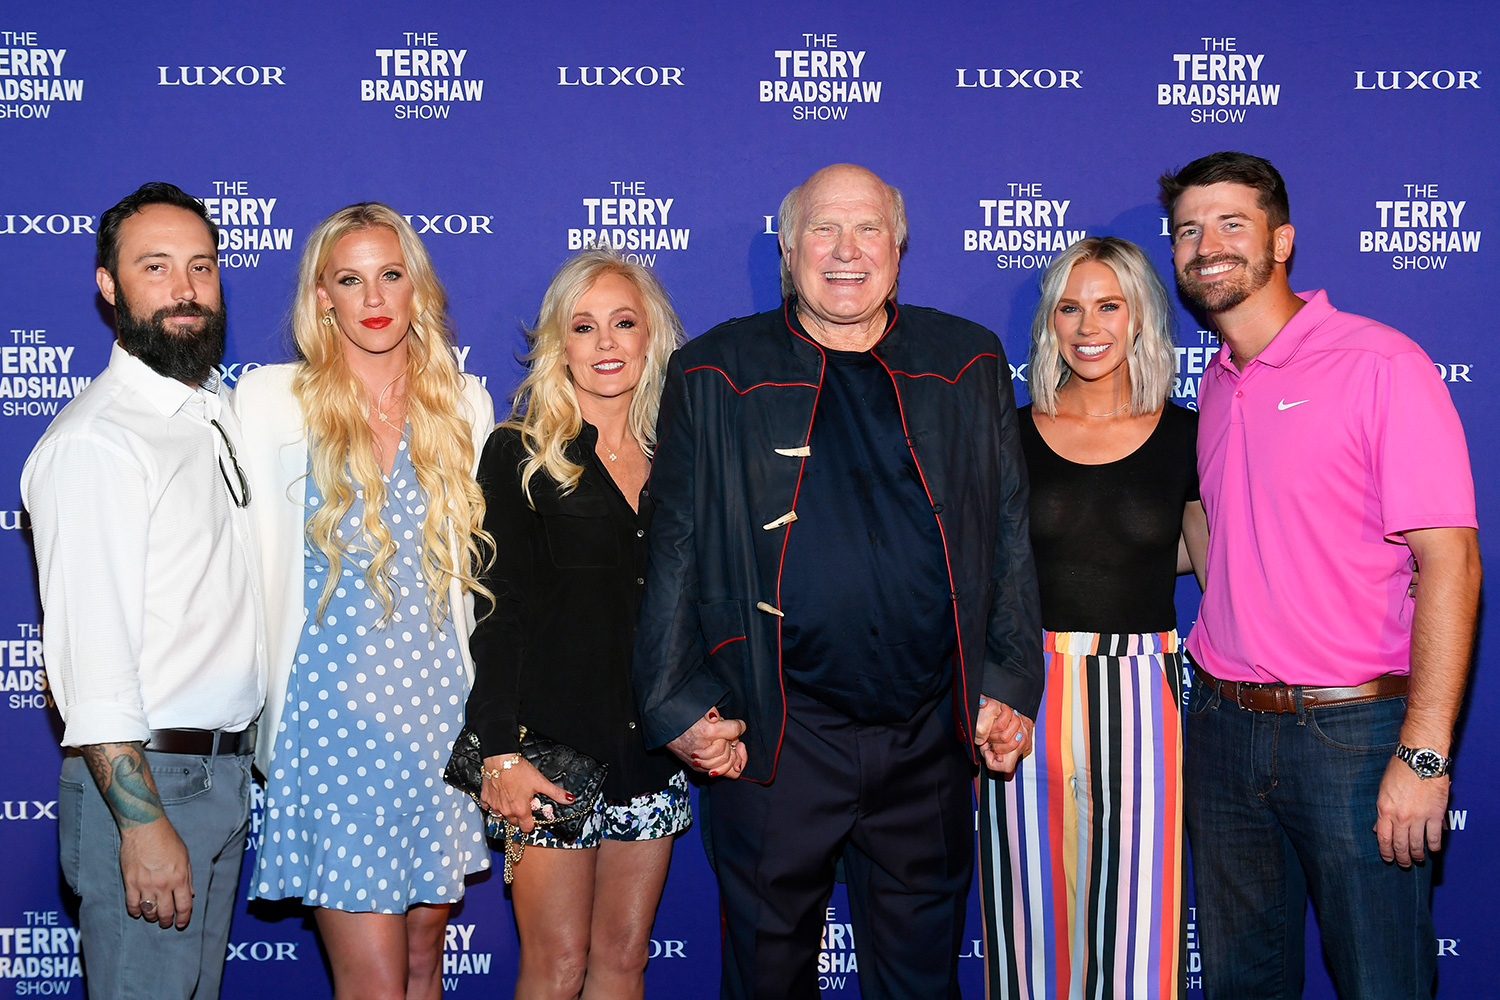 Noah Hester, Erin Bradshaw, Tammy Bradshaw, Pro Football Hall of Fame member and sports broadcaster Terry Bradshaw, Rachel Bradshaw and Dustin Hughes